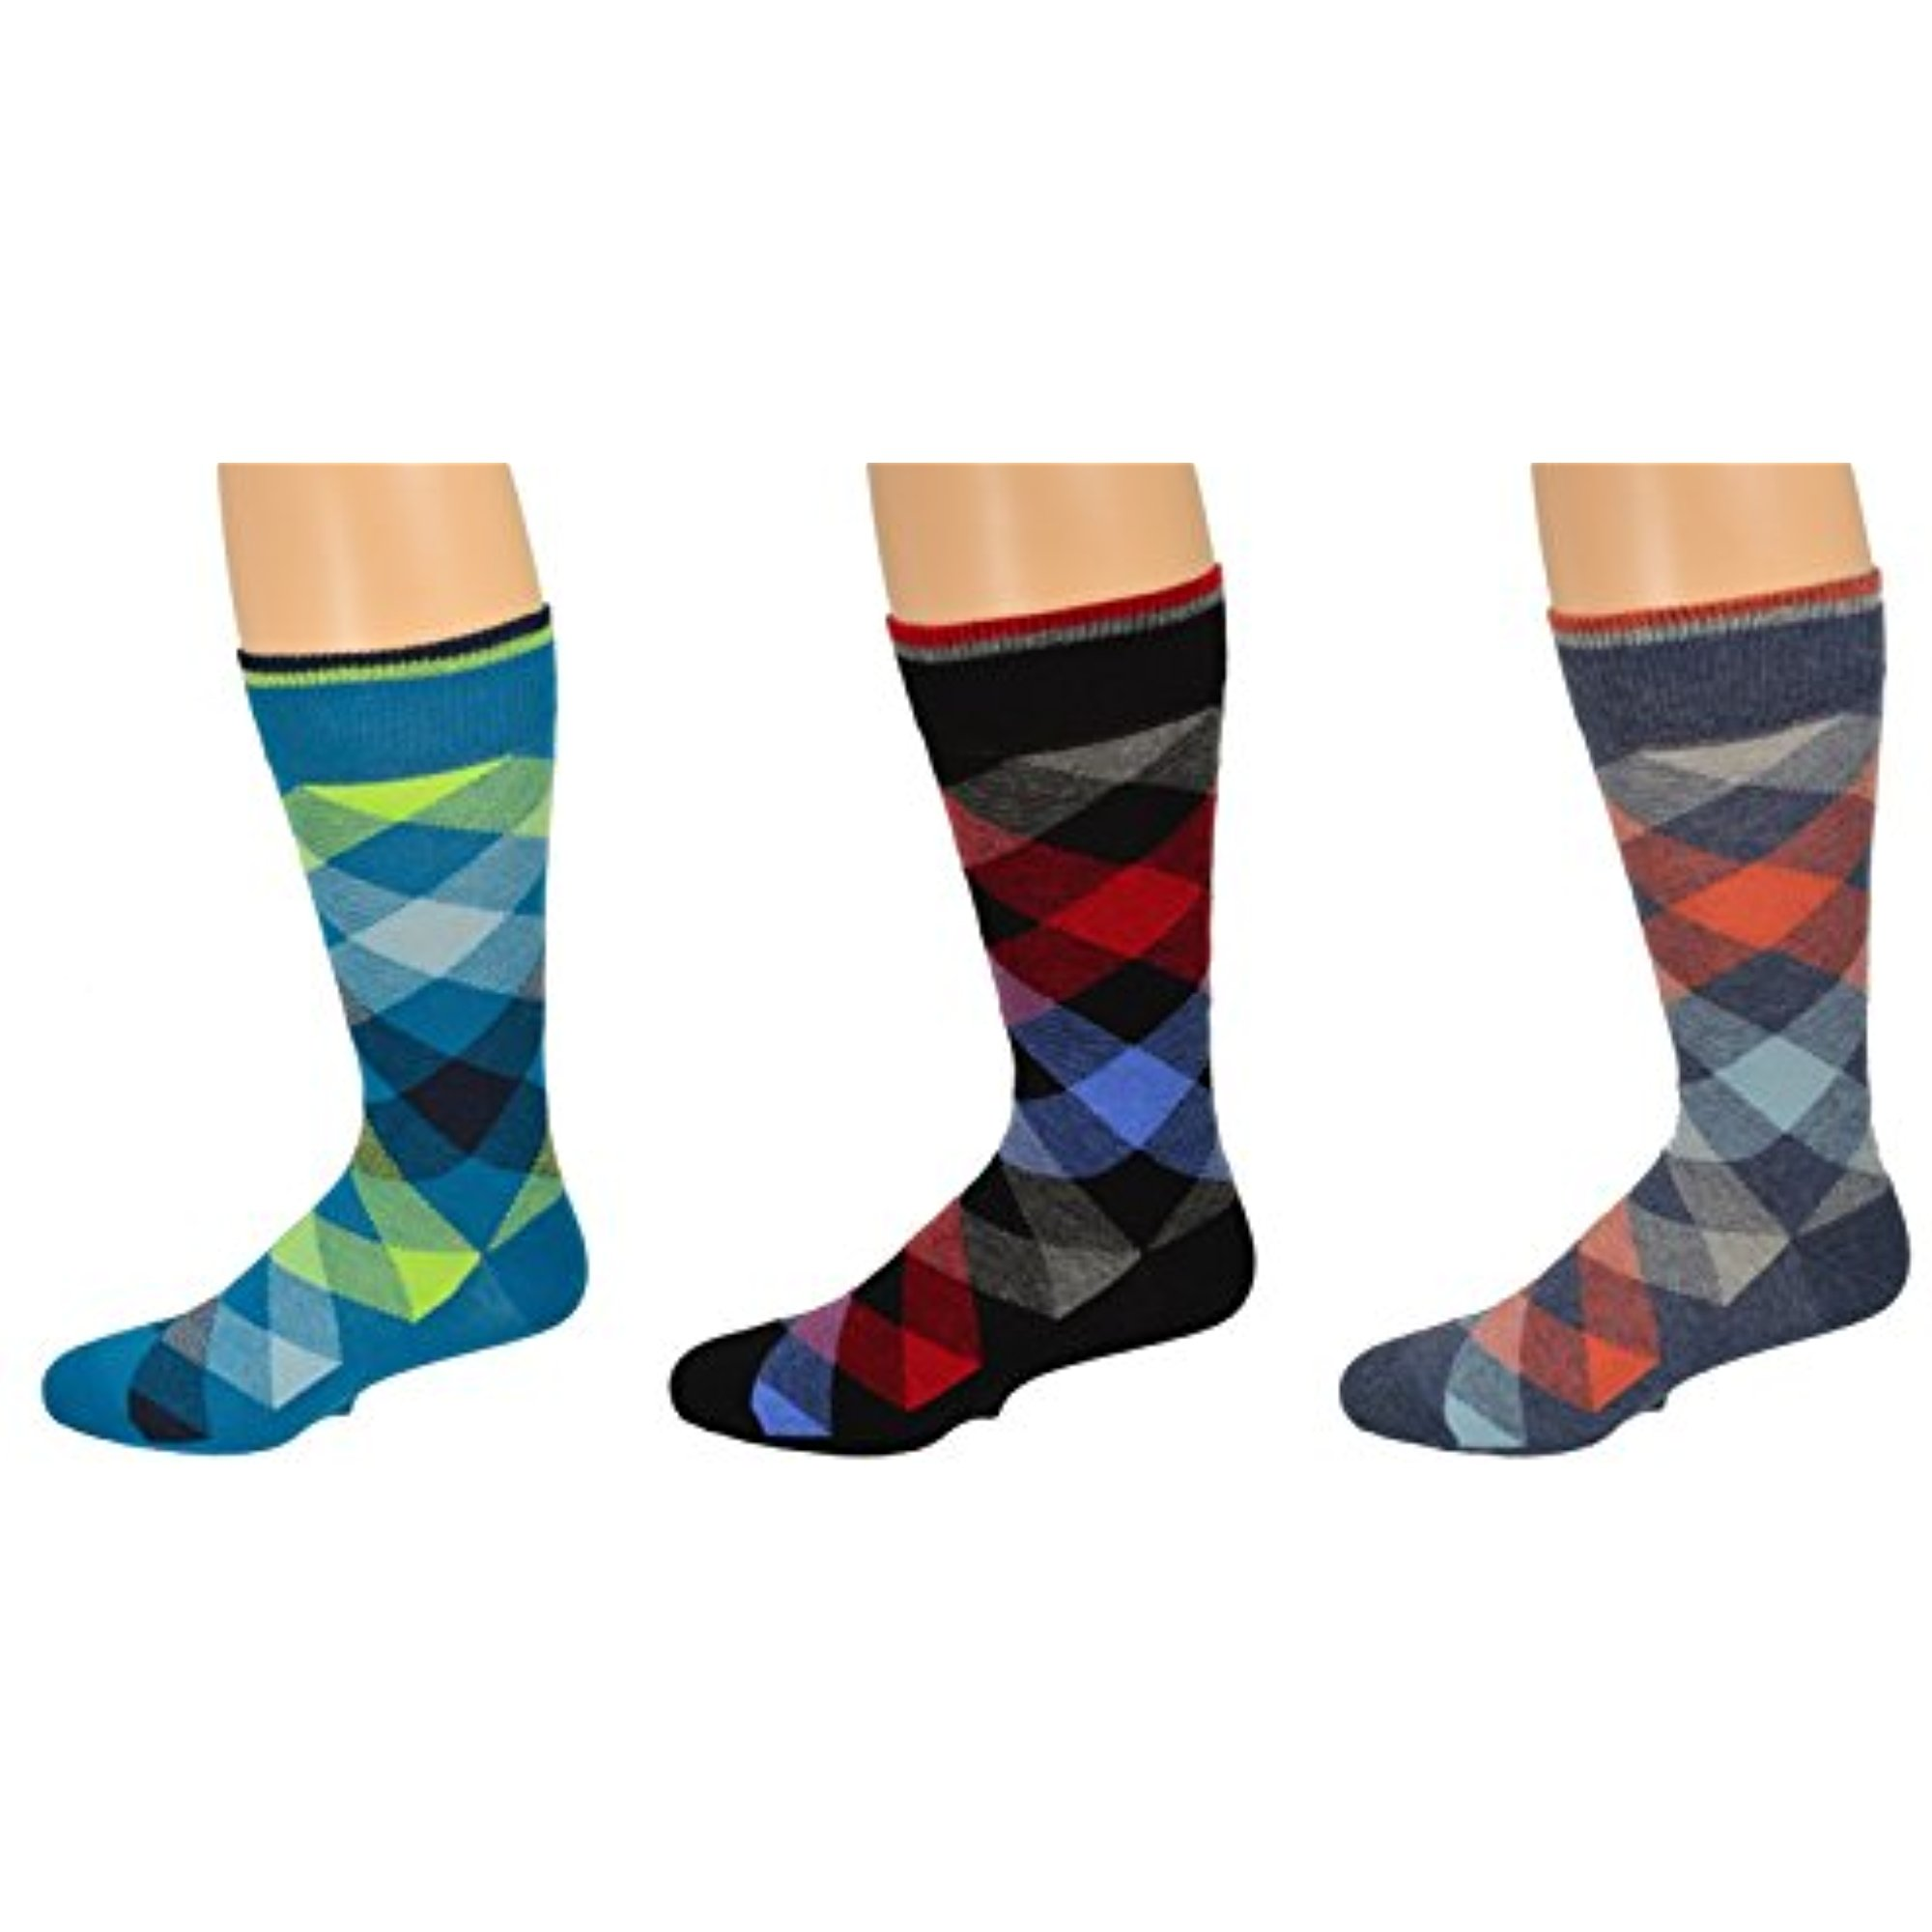 Sierra Socks Men's Dress Casual 3 Pair Pack Combed Cotton Crew Argyle Socks (US Shoe Size 8-12, Sock Size 10-13, Black/Aqua/Denim (Assorted 2)